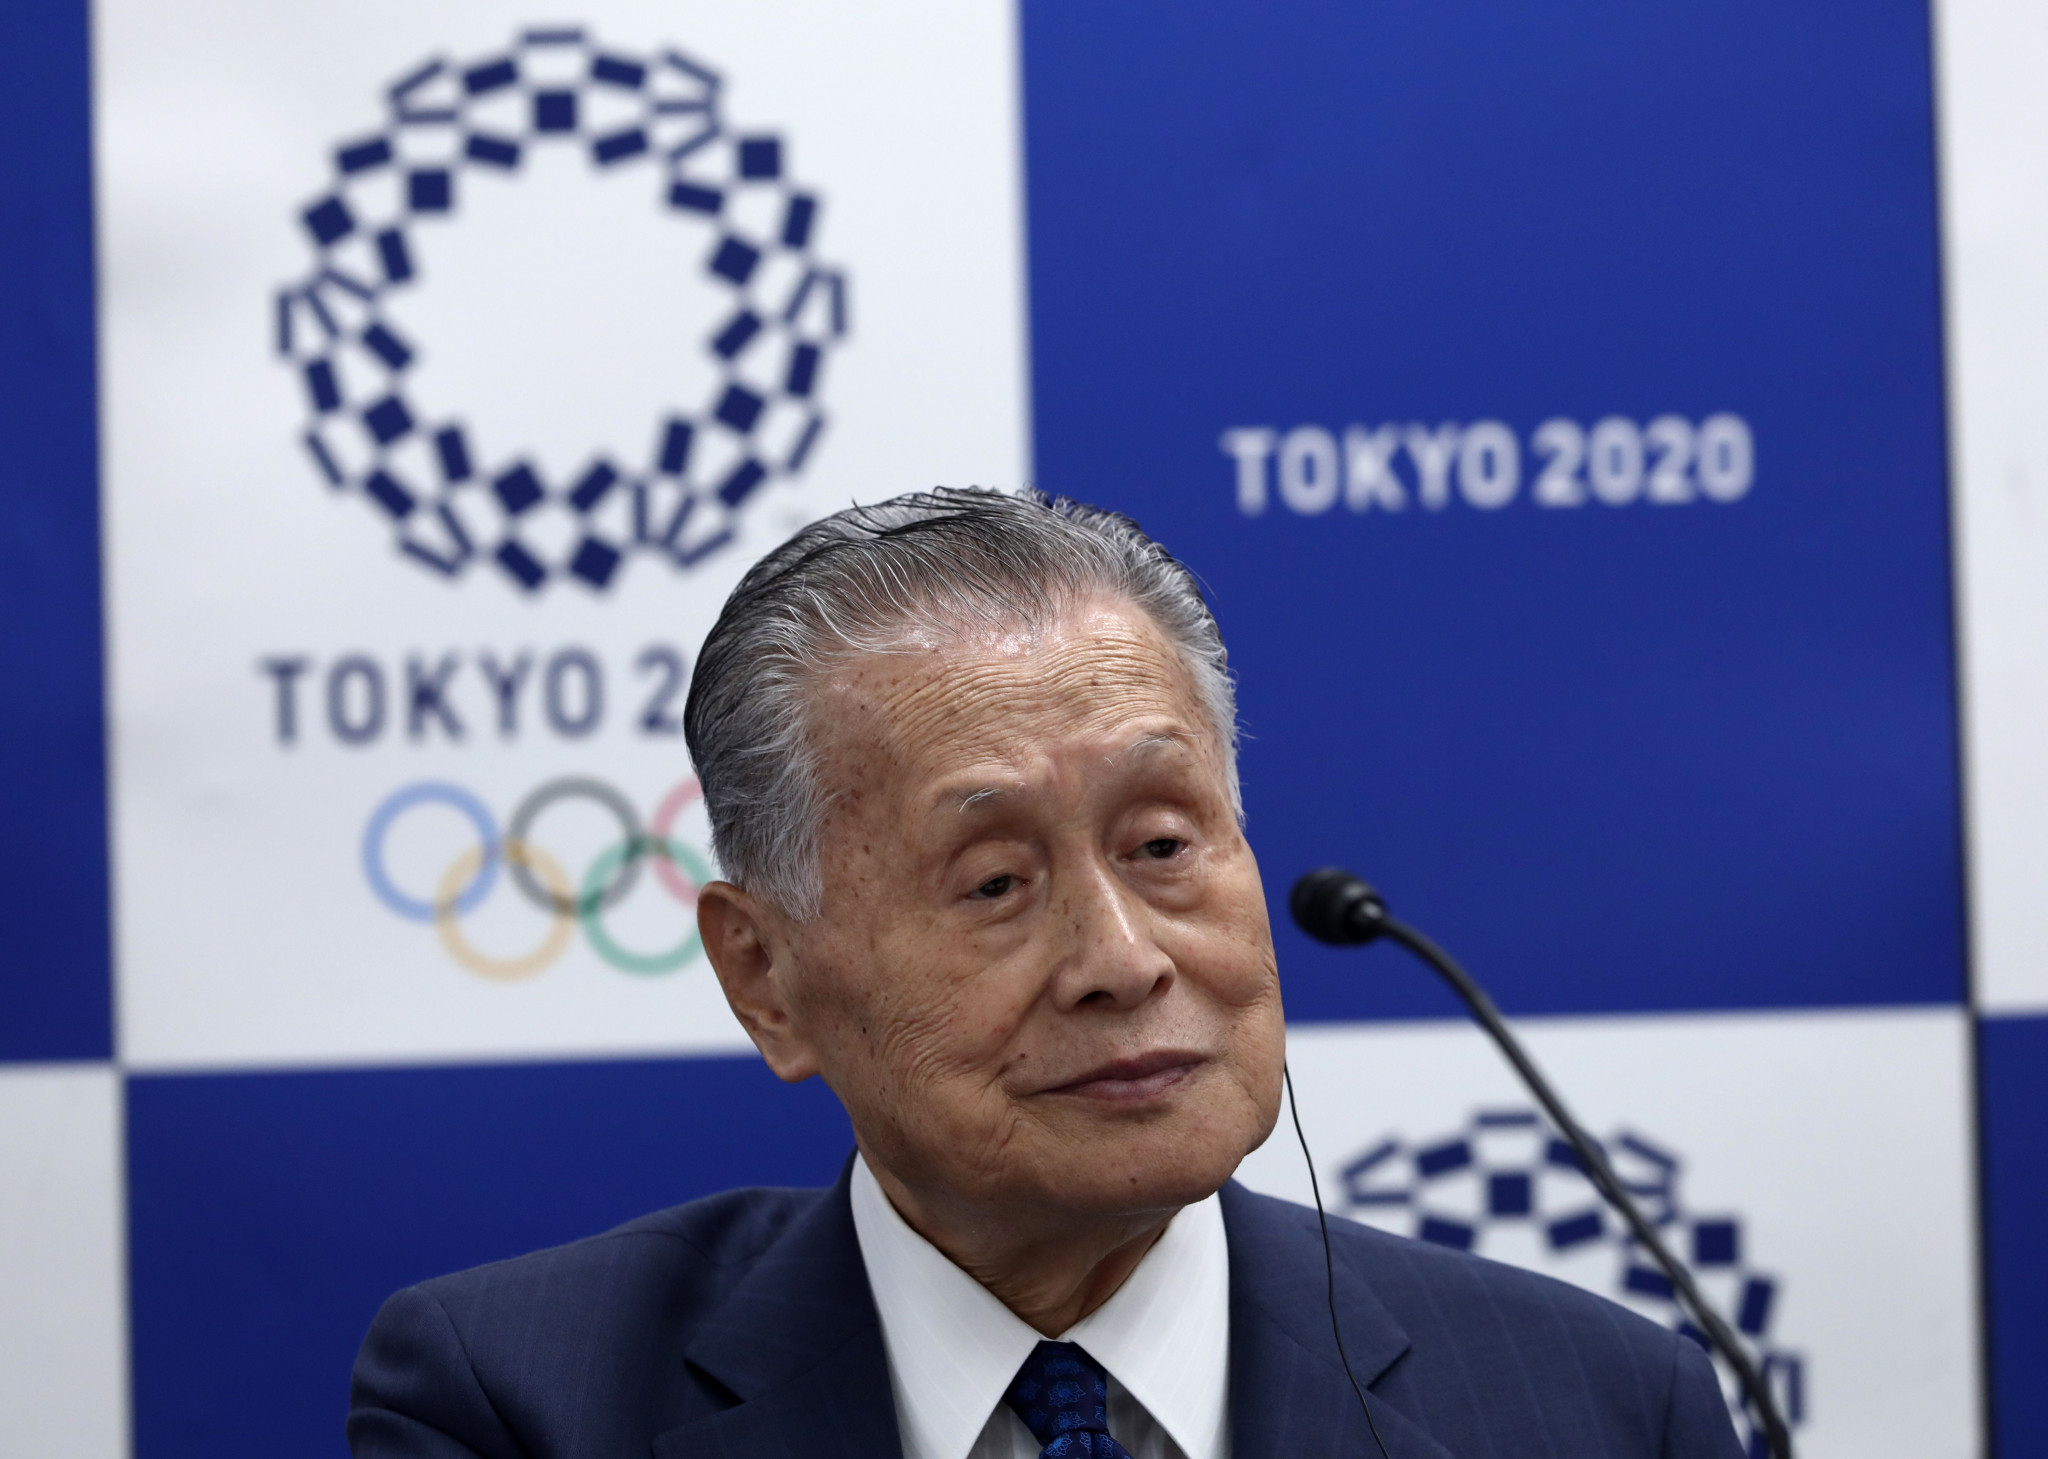 The daylight saving idea came from Prime Minister Yoshiro Mori, the President of the Tokyo Organising Committee of the Olympic and Paralympic Games ©Getty Images